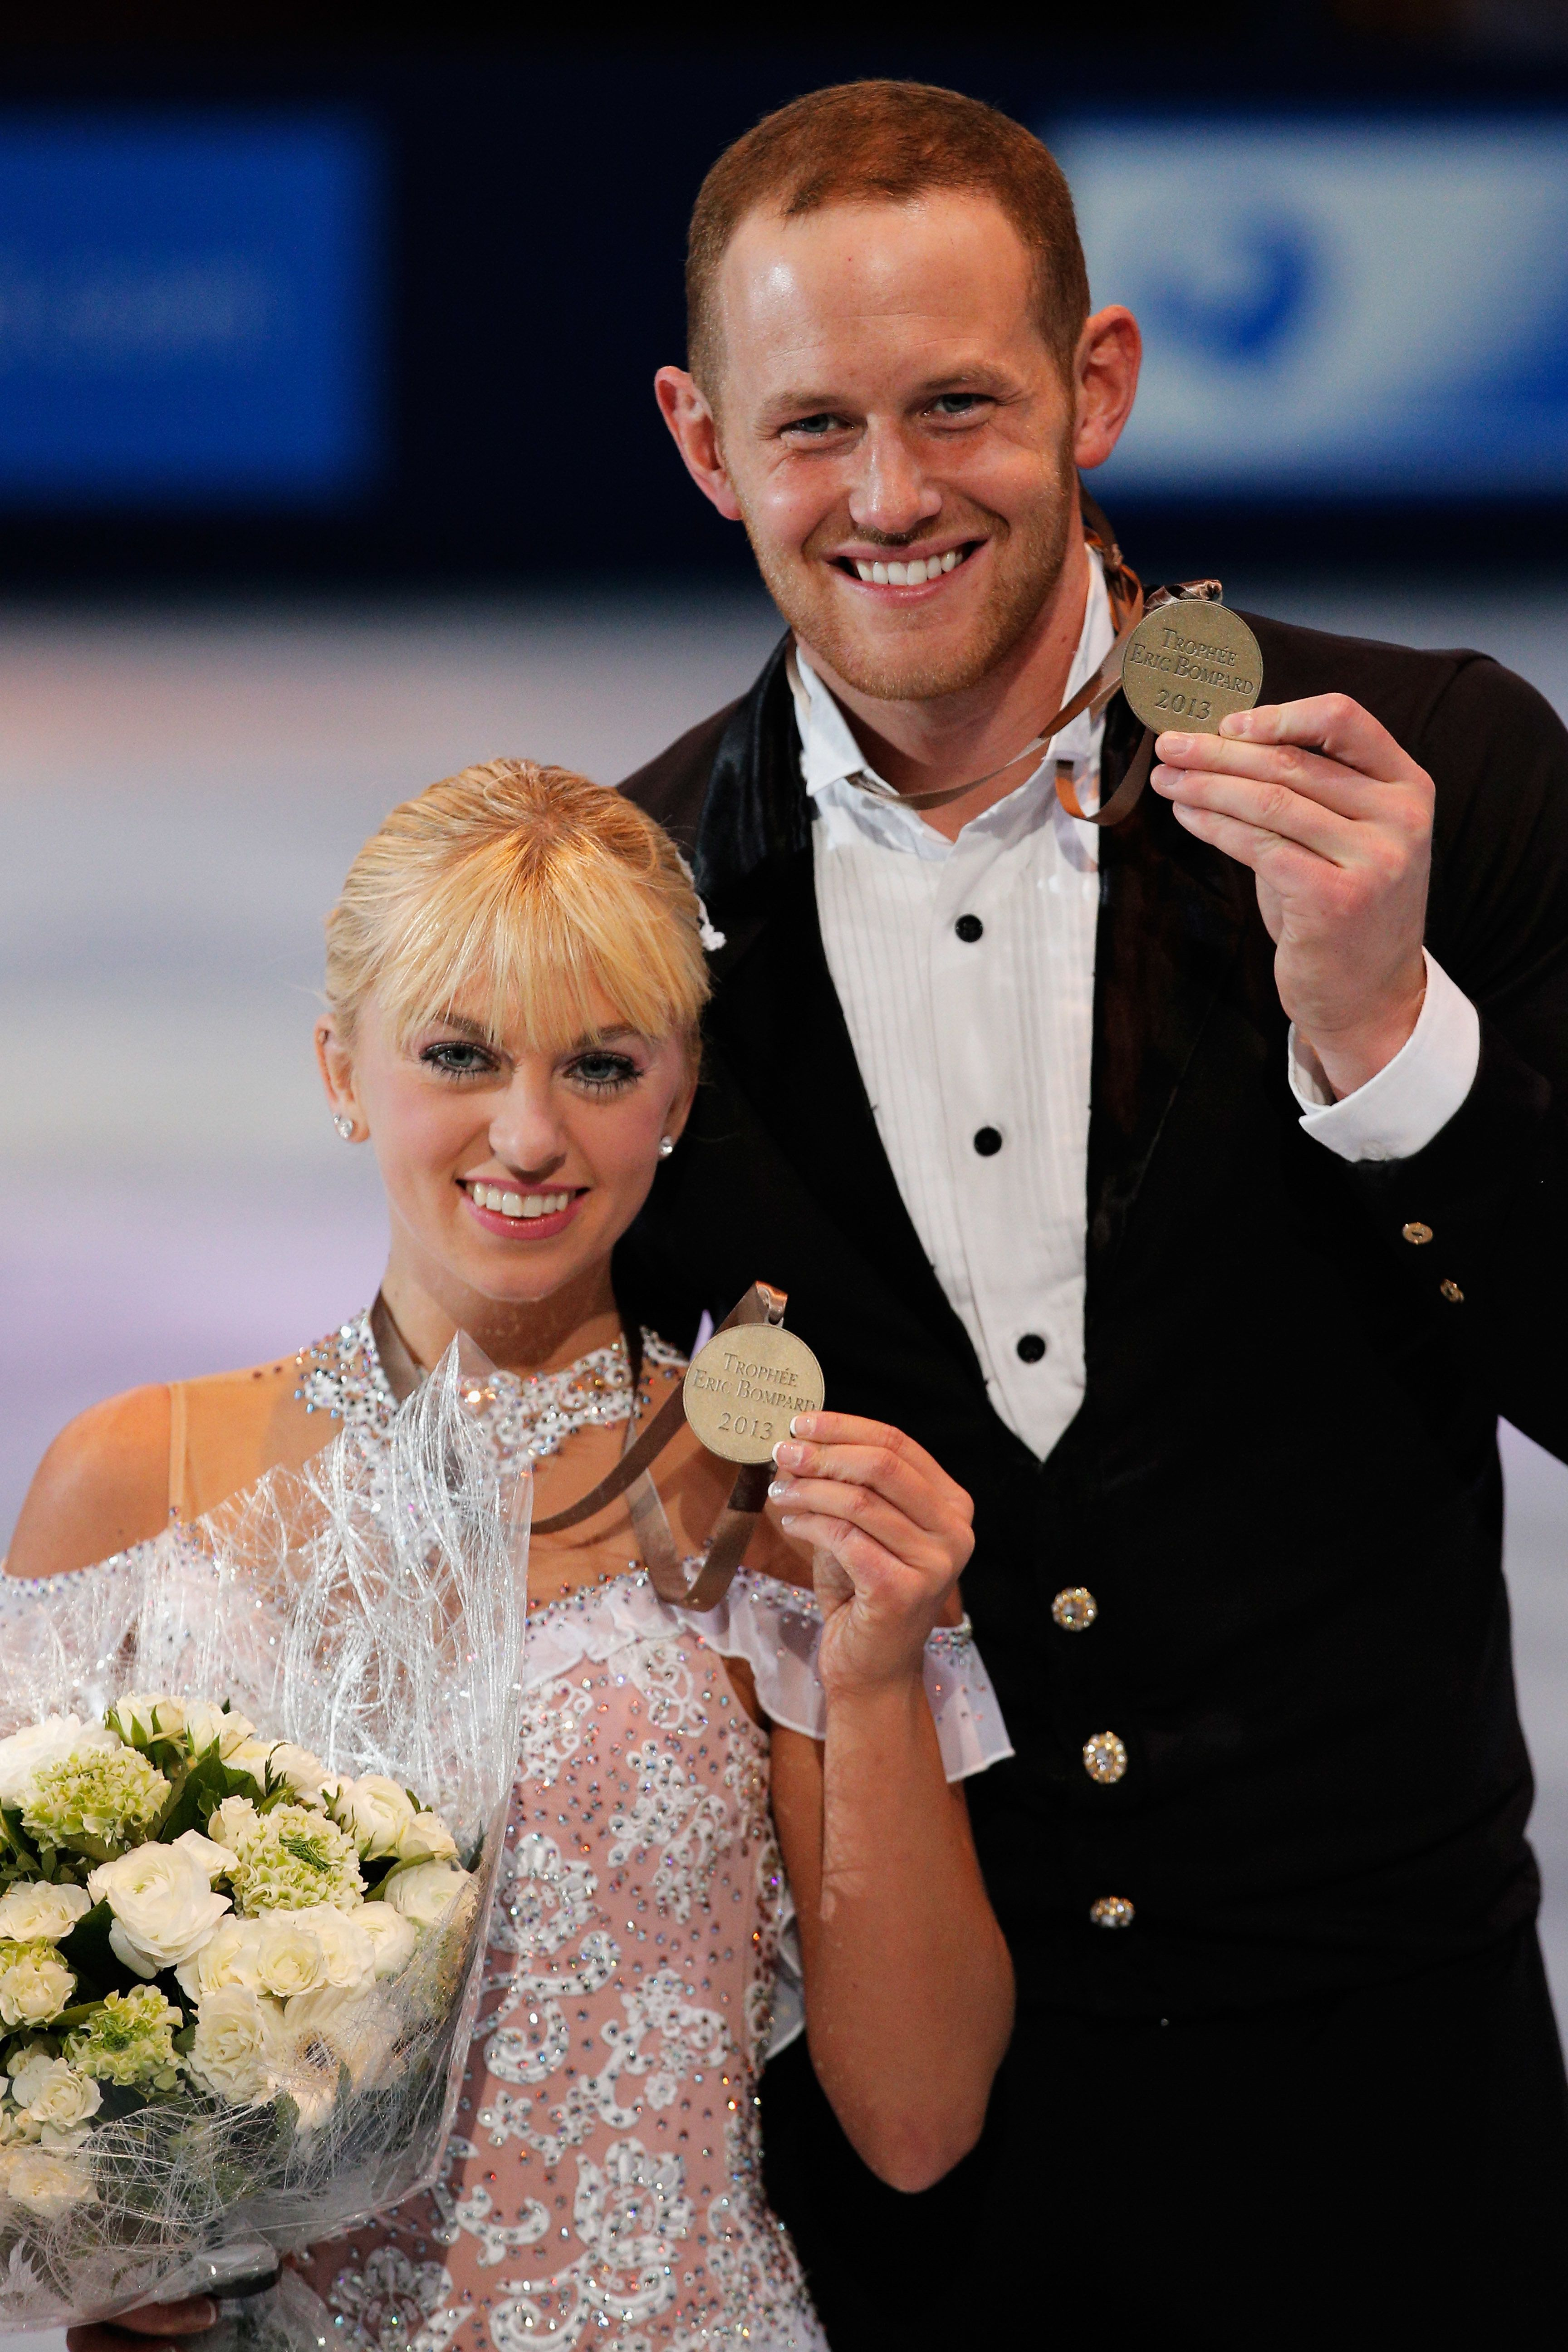 John Coughlin, Champion U.S. Figure Skater, Found Dead 1 Day After Suspension